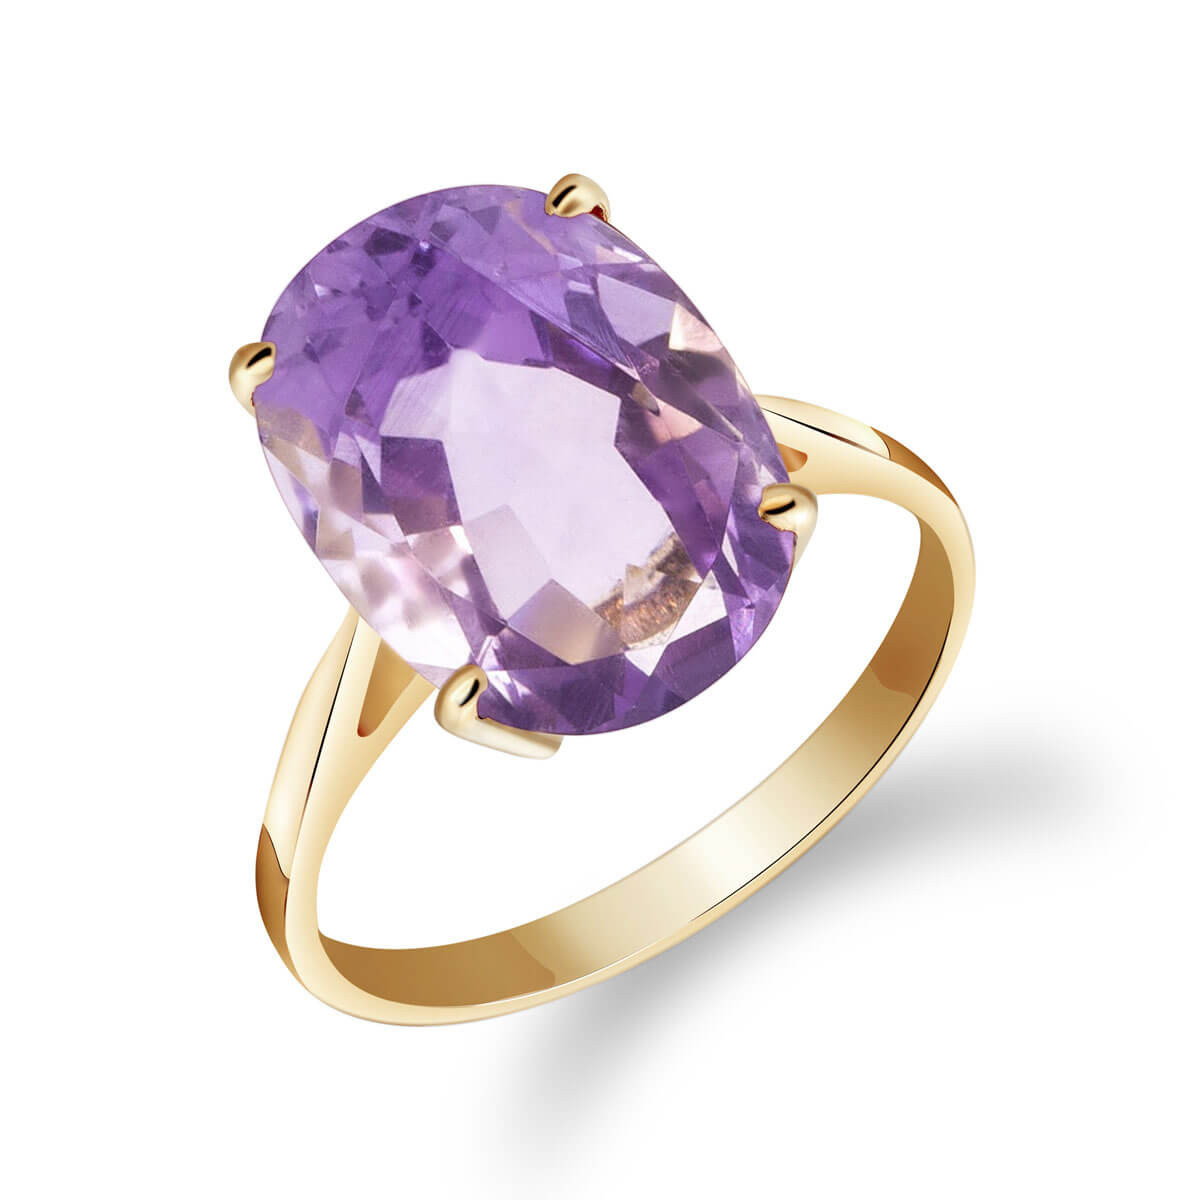 Amethyst Valiant Ring 7.55 ct in 9ct Gold